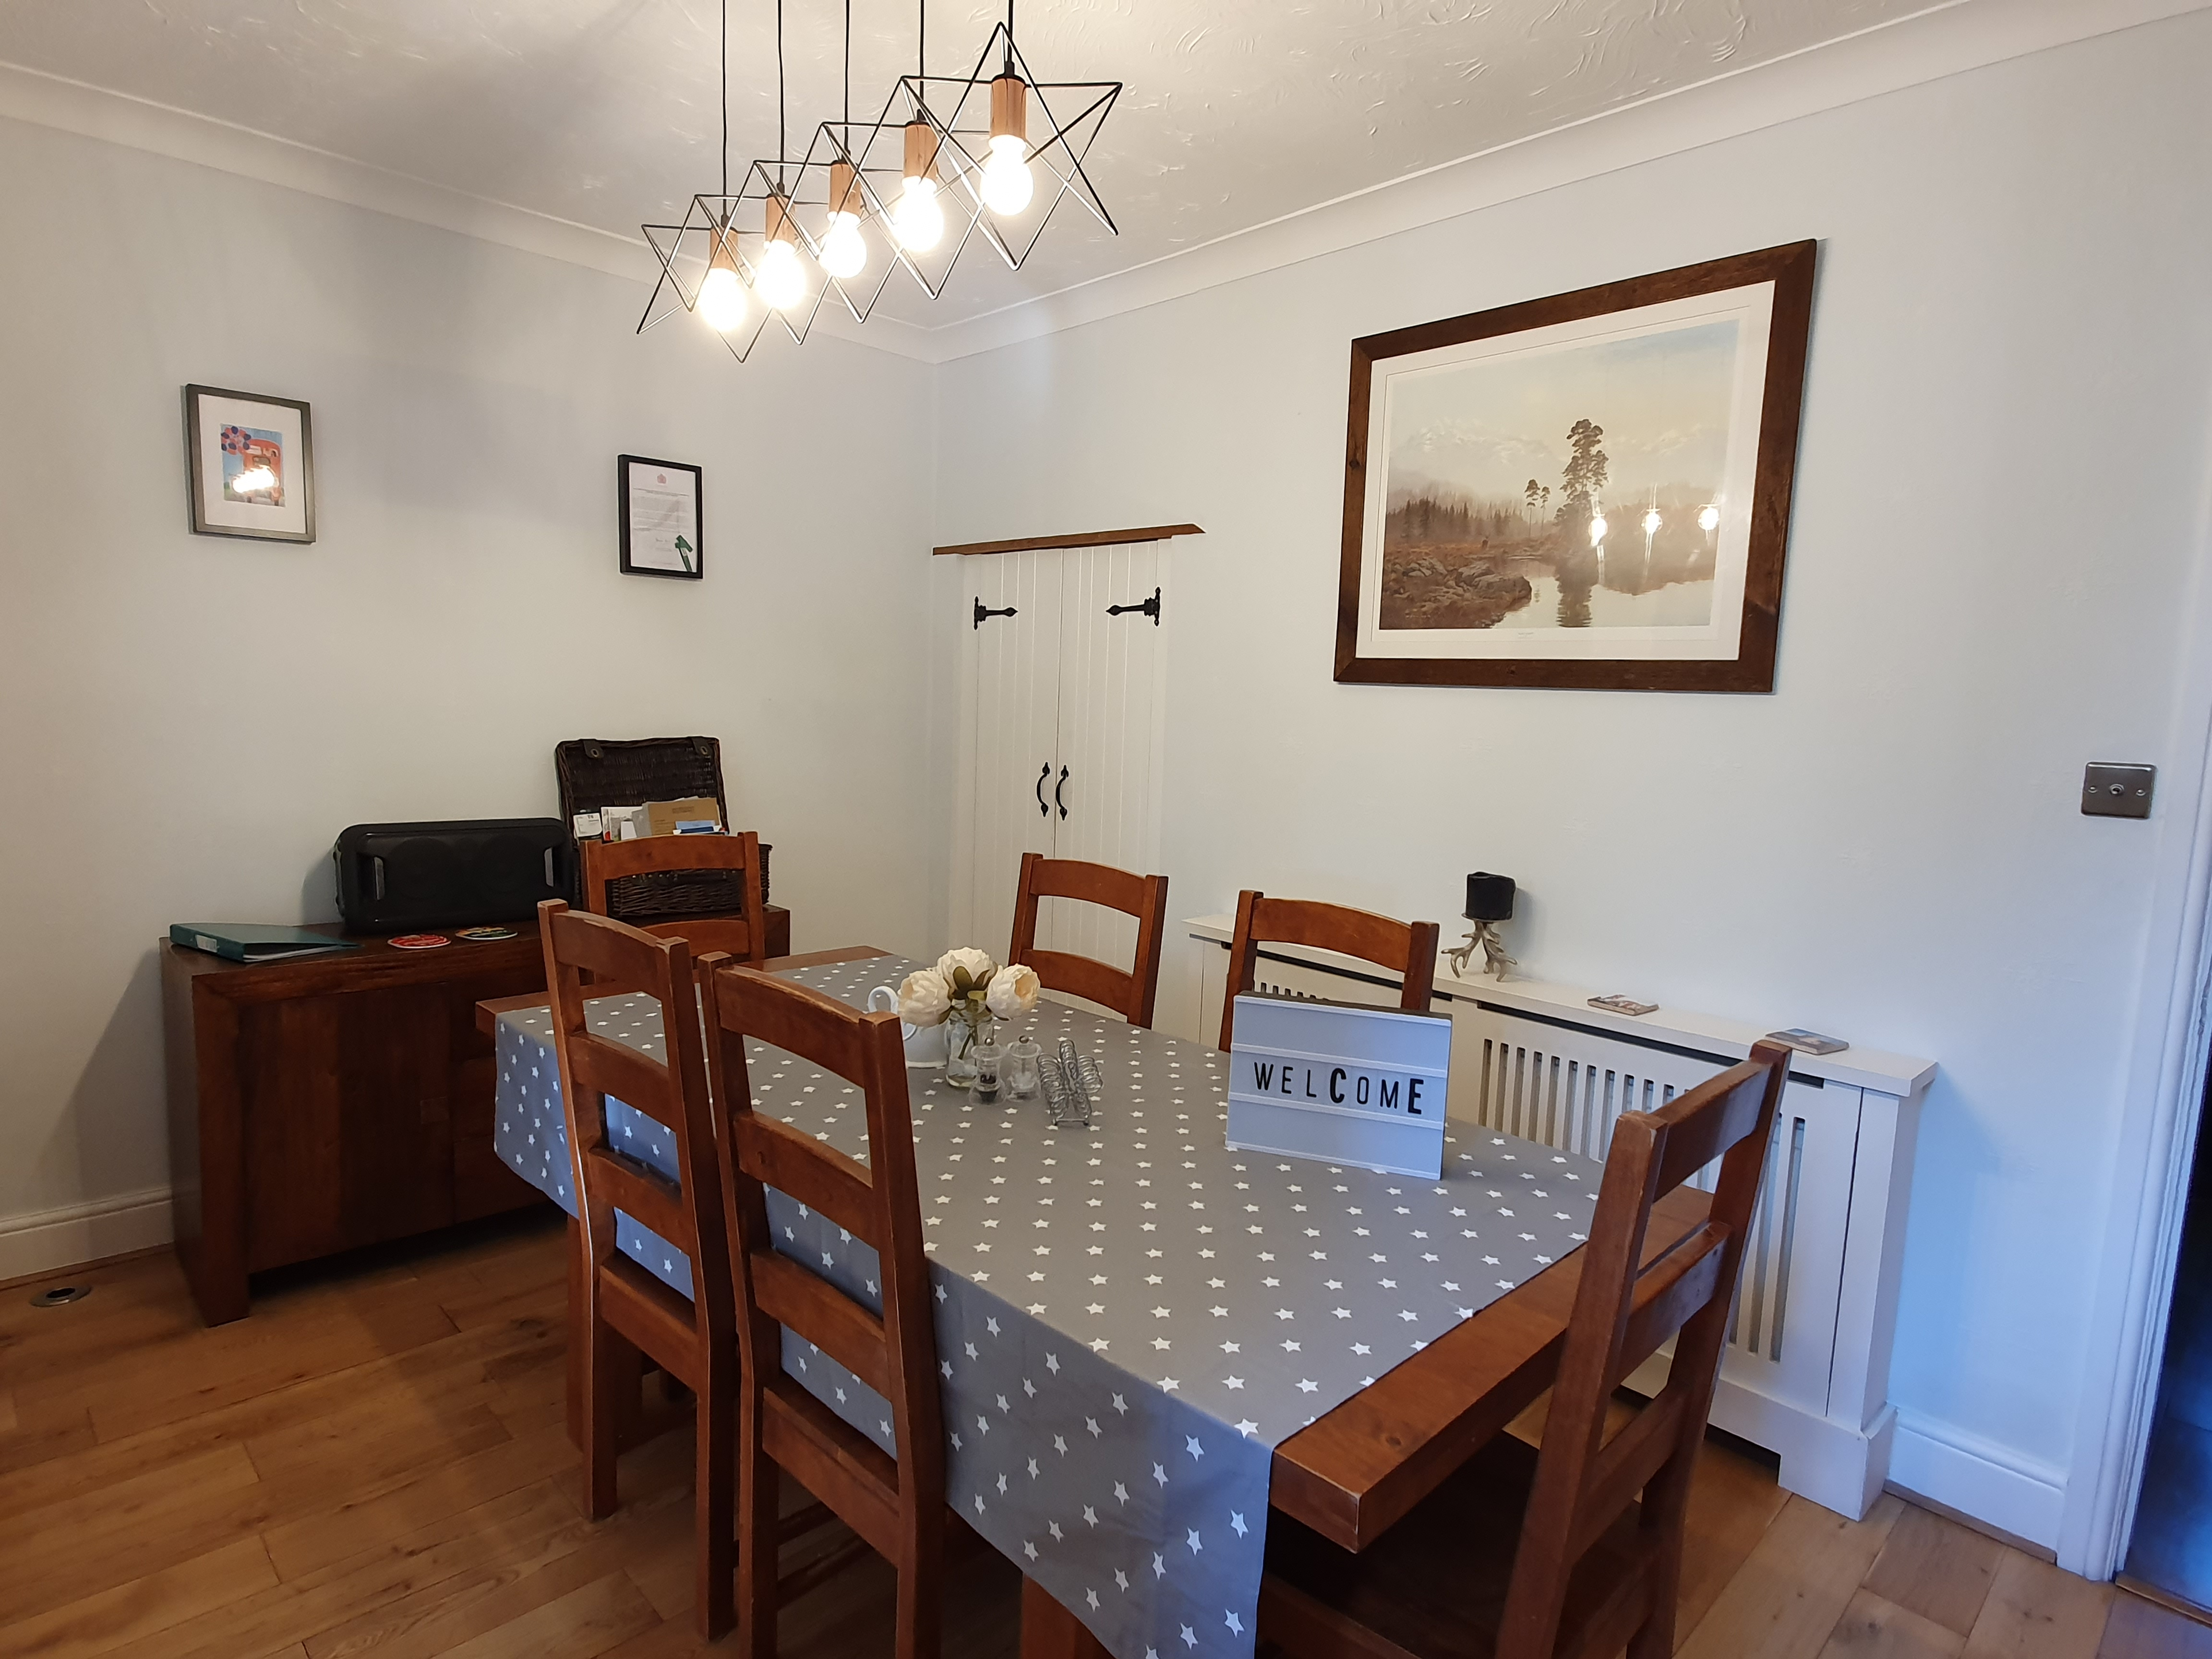 Saddlers Rest Perfect For Lapland Uk The Castle Cottages For Rent In Windsor And Maidenhead England United Kingdom - Garden Furniture Clearance Windsor Racecourse